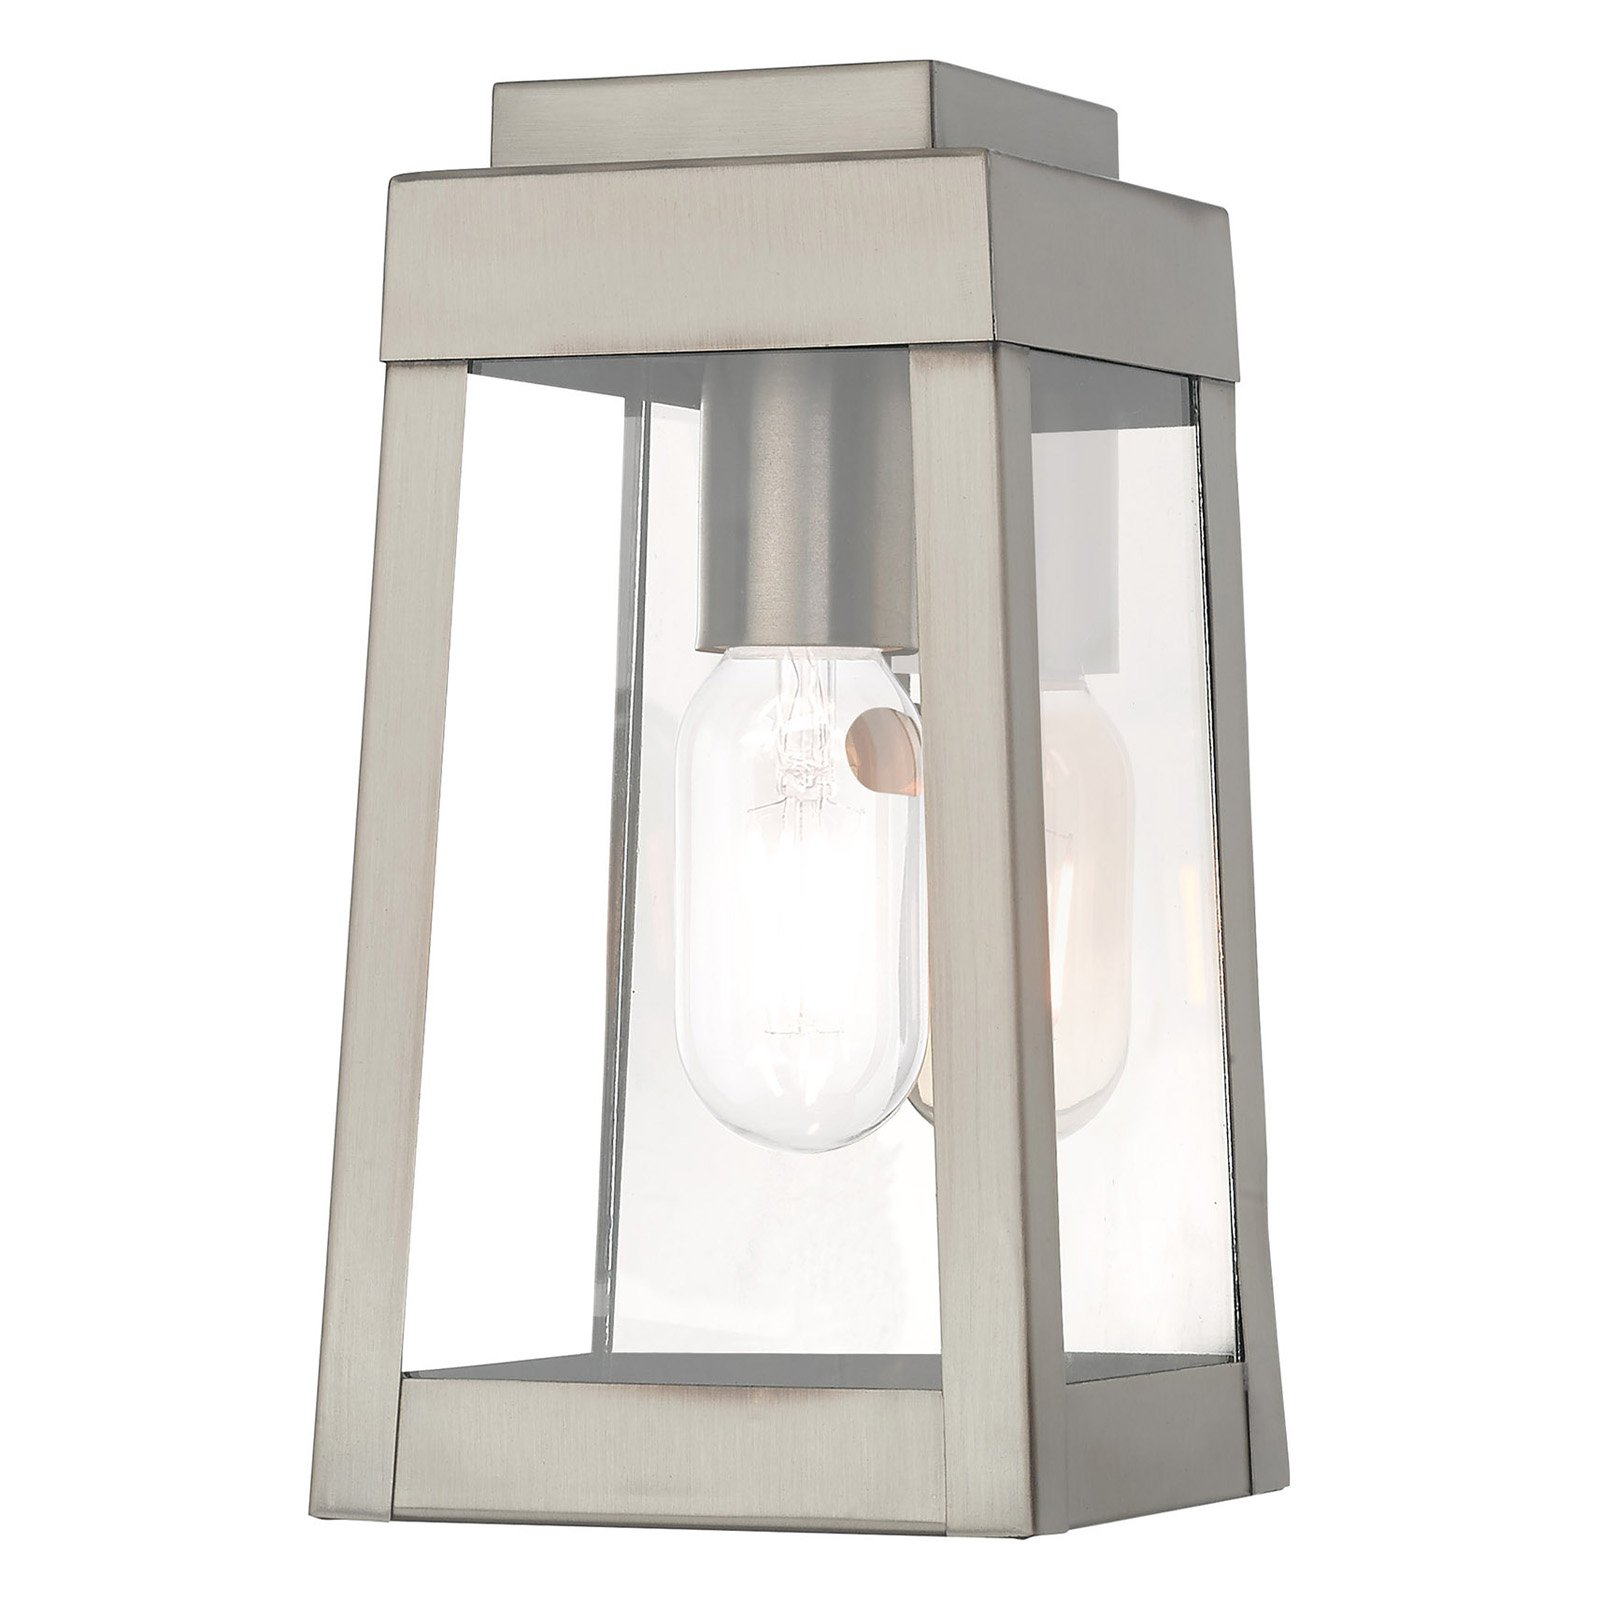 Livex Lighting Oslo 2085 Outdoor Wall Light